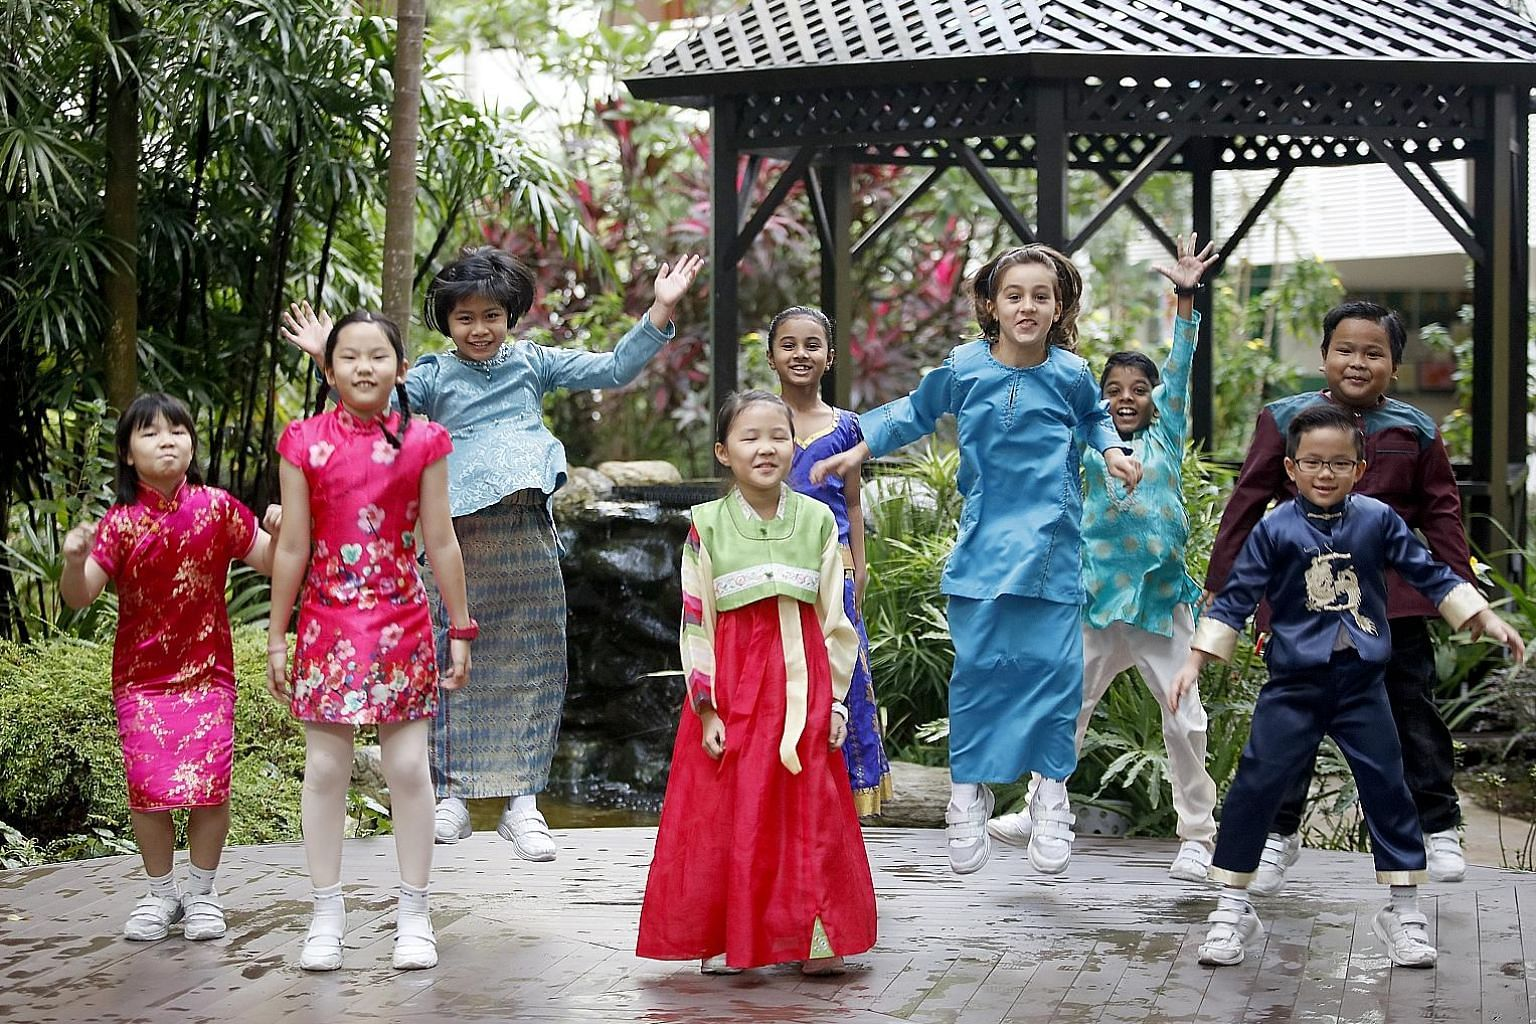 New Town Primary School pupils celebrating Racial Harmony Day. The writer's research suggests that everything else being equal, the racial integration within Singapore likely made Singaporeans more prosocial and helpful.